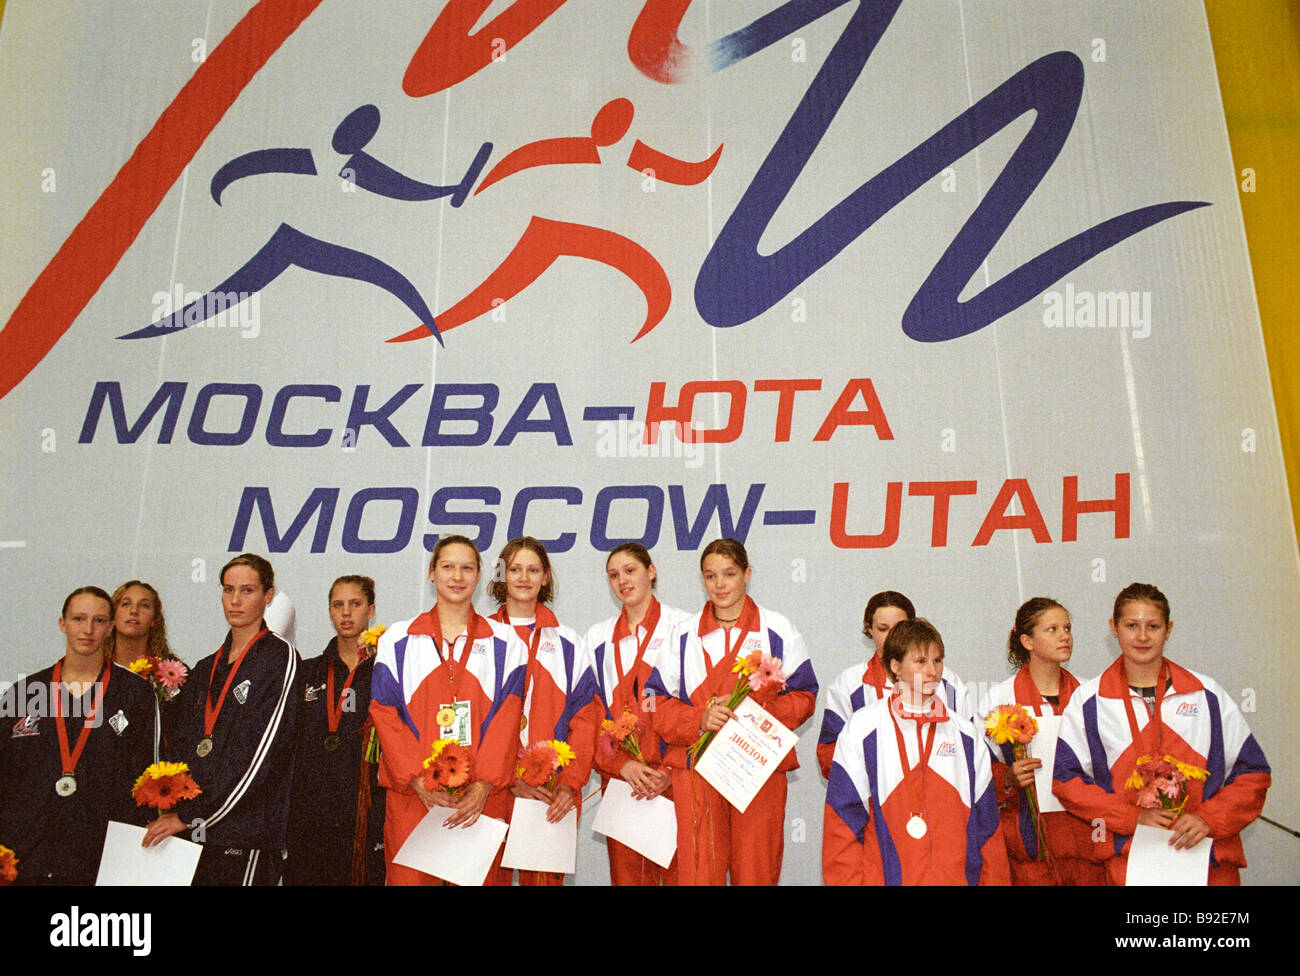 Awarding the girl team Moscow that won the 4x100m swim relay at the Moscow Utah international youth championship - Stock Image